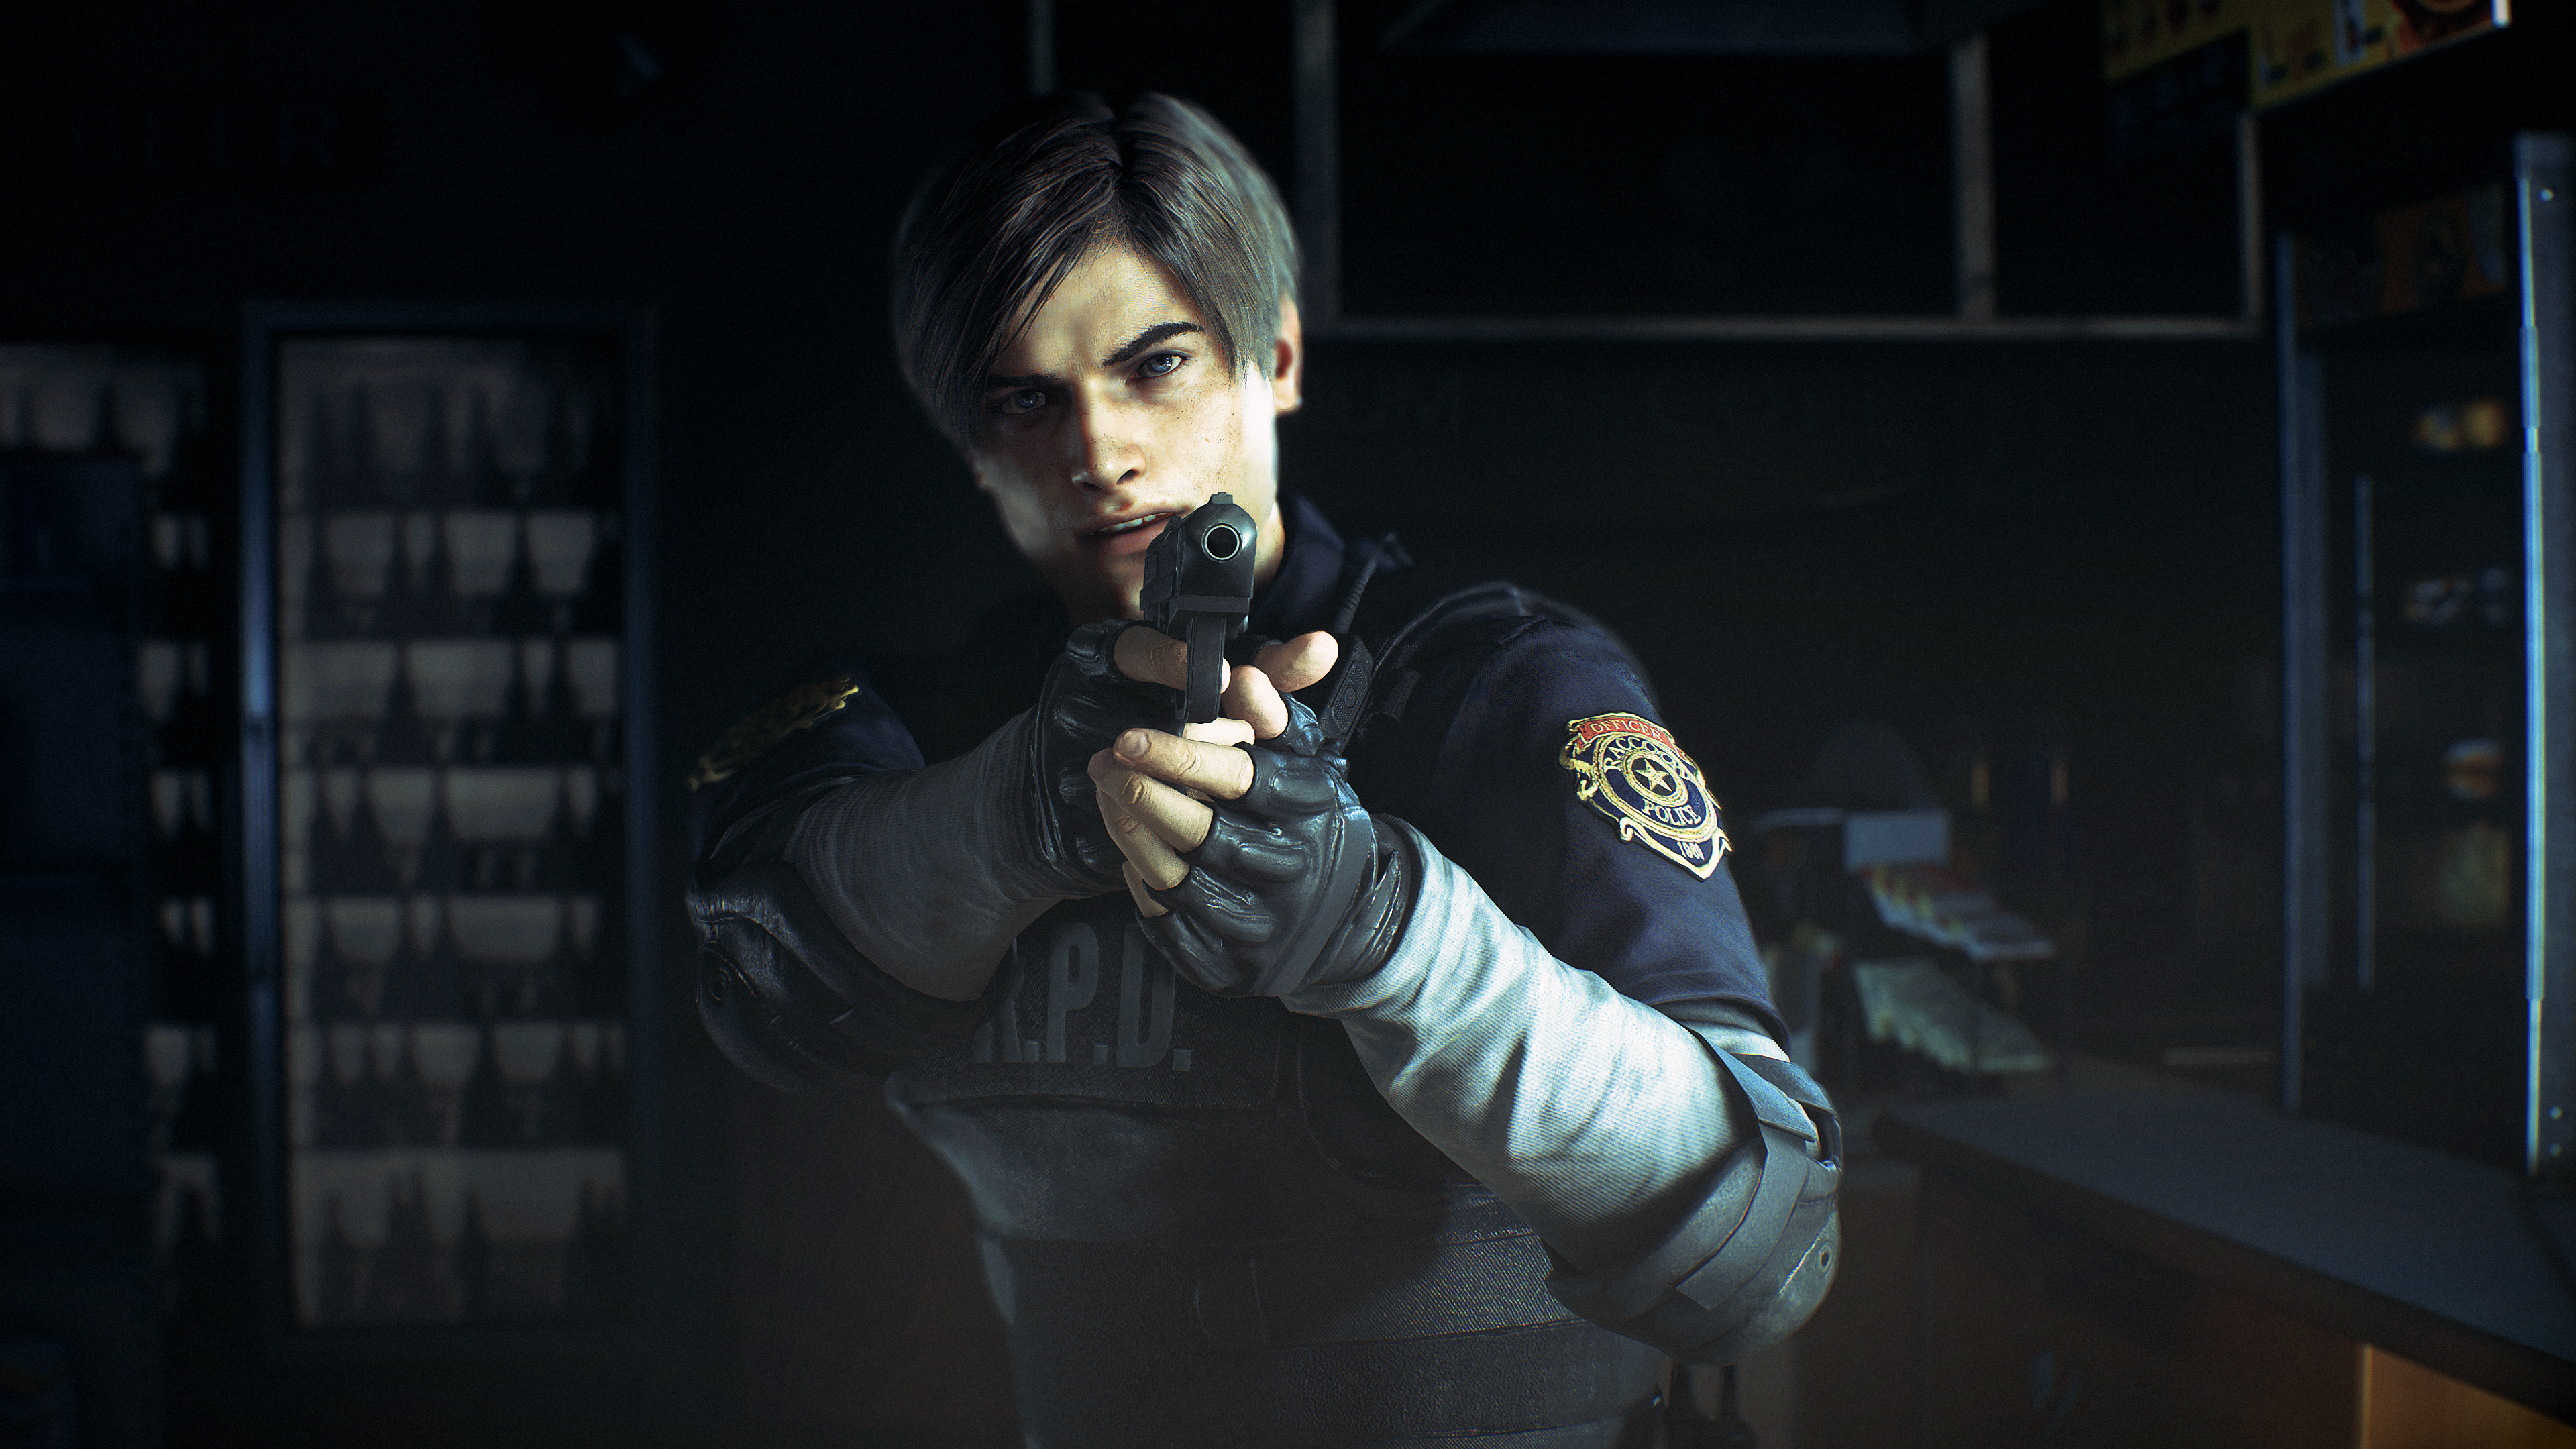 Resident Evil 2 remake devs worried about 'ridiculous' giant alligator fight | PC Gamer